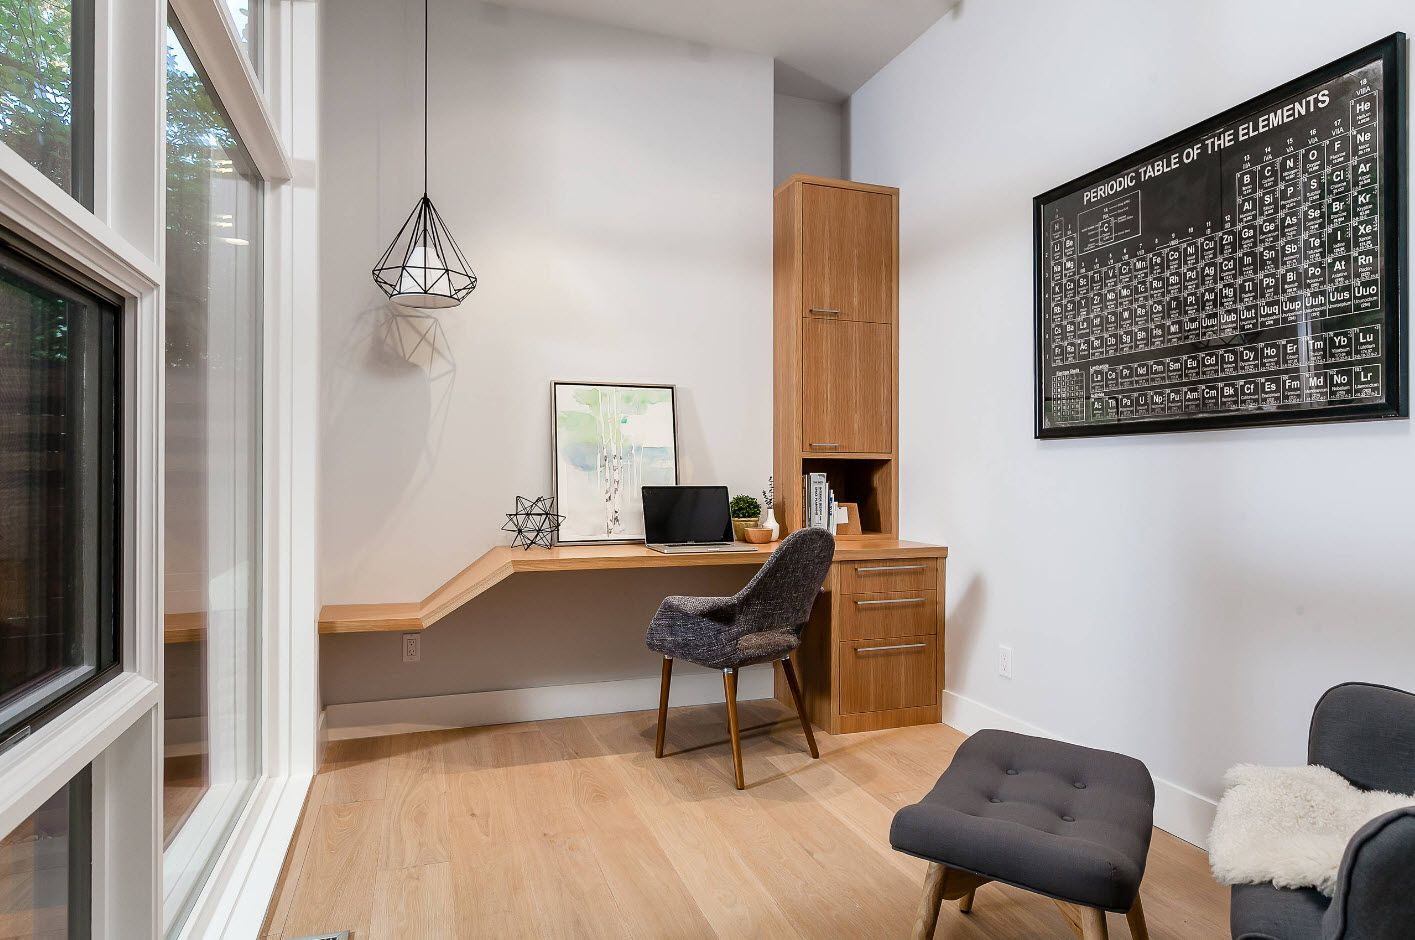 Light wooden furniture and wavy working top at the minimalsitic home office